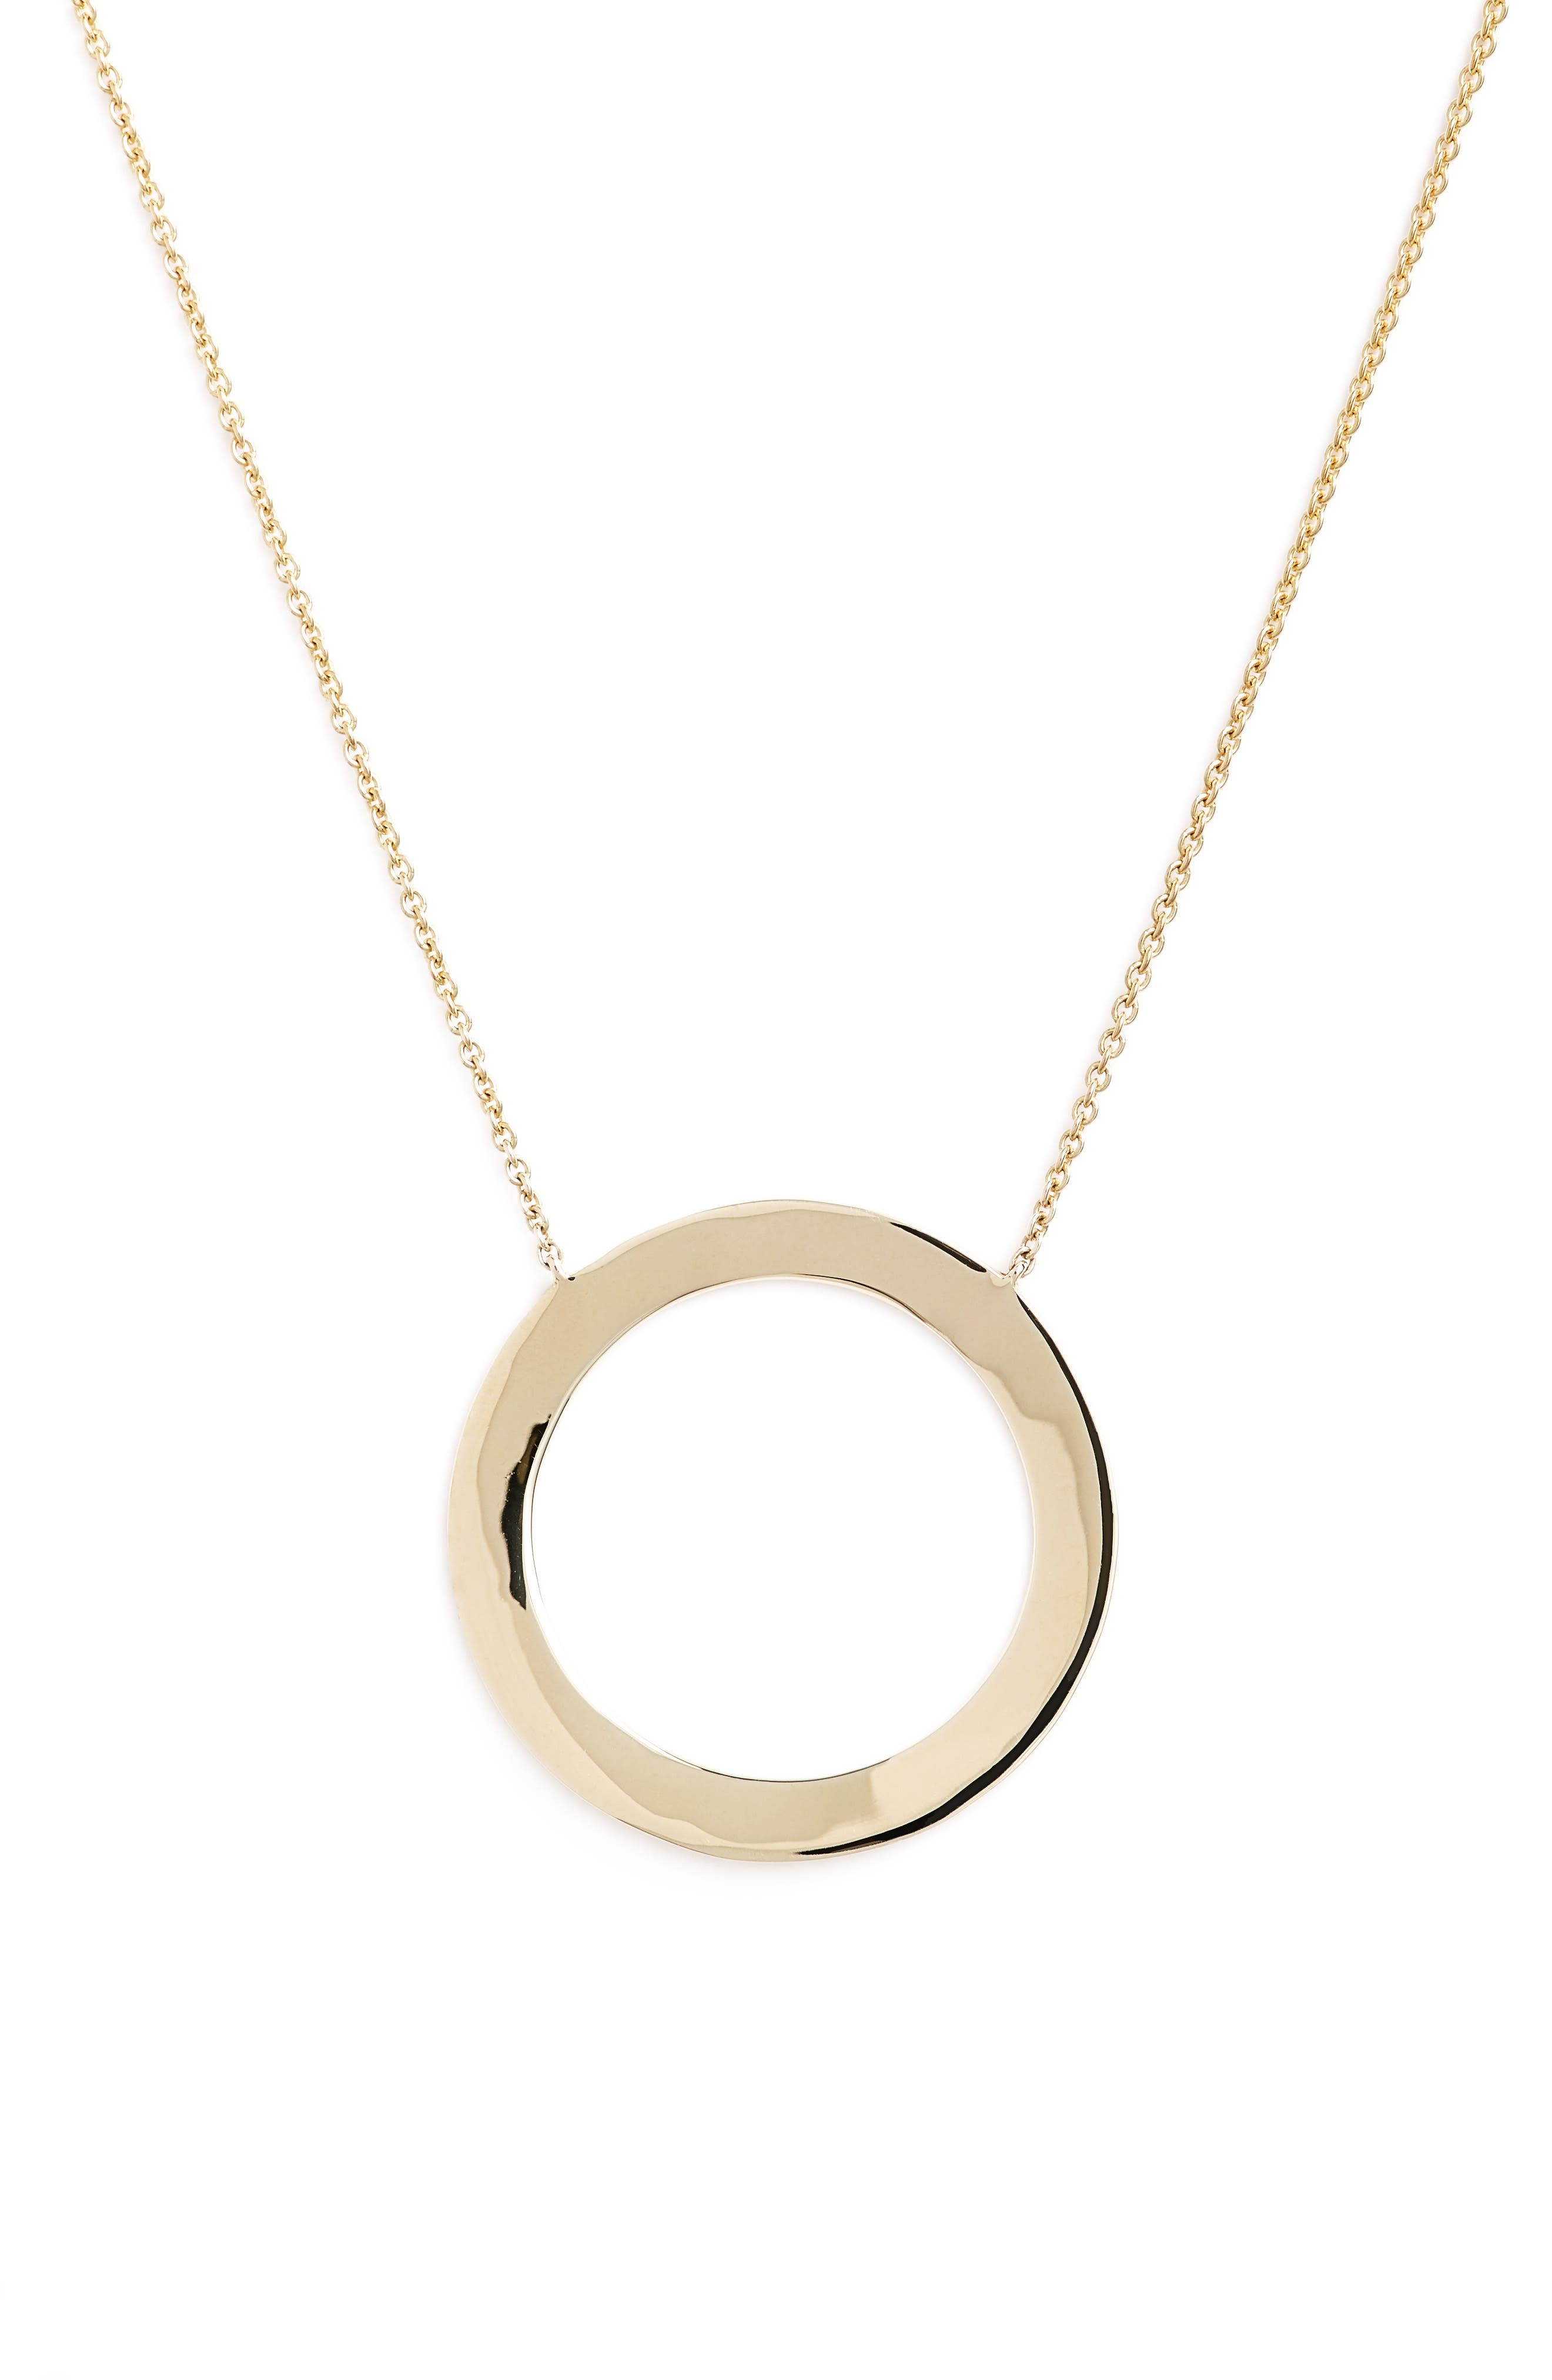 Main Image - Bony Levy Geo Circle Pendant Necklace (Nordstrom Exclusive)